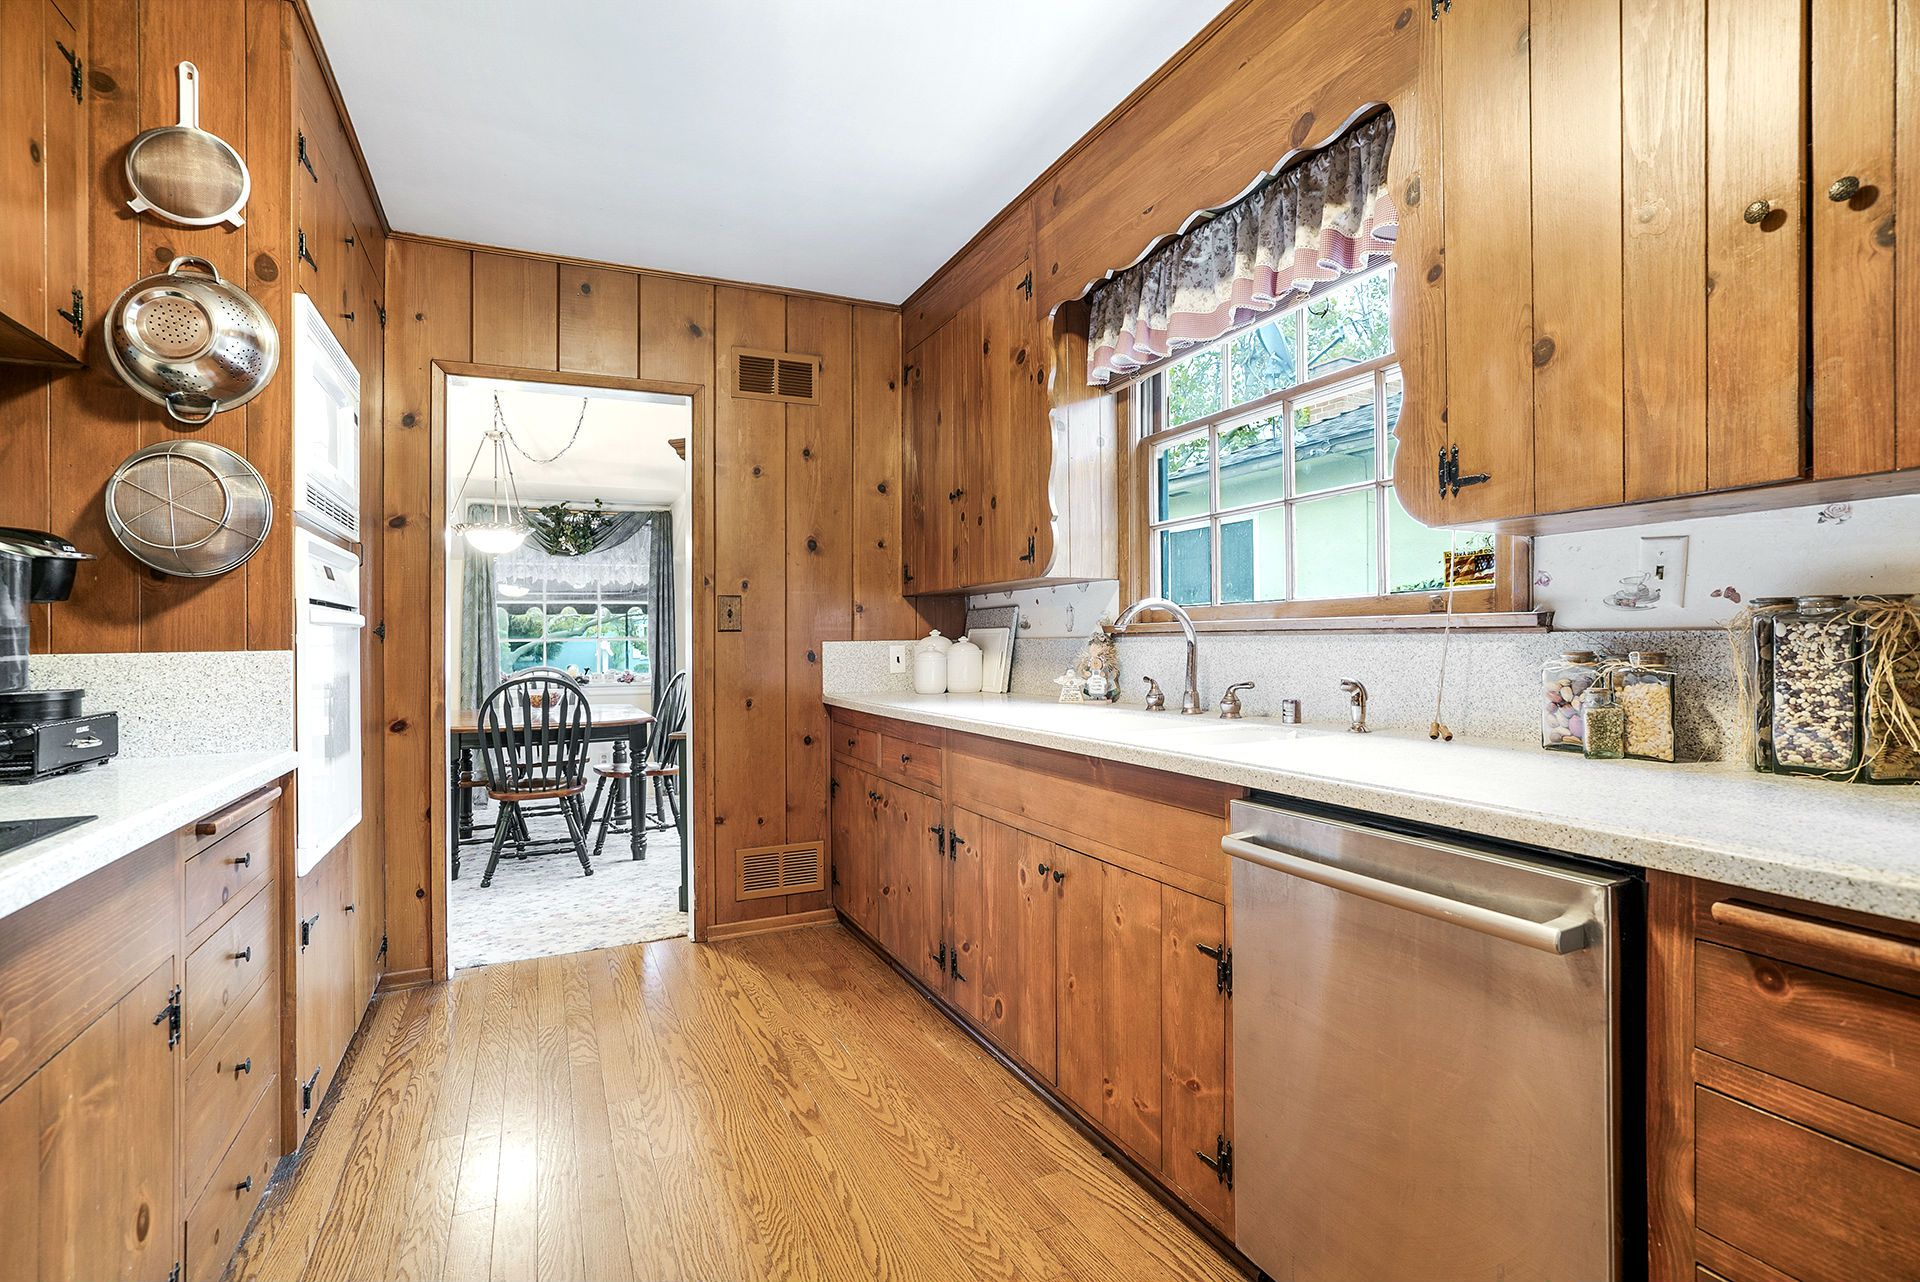 Spacious Corian counter tops in this large and functional kitchen with newer oven, built-in microwave, and Bosch dishwasher.